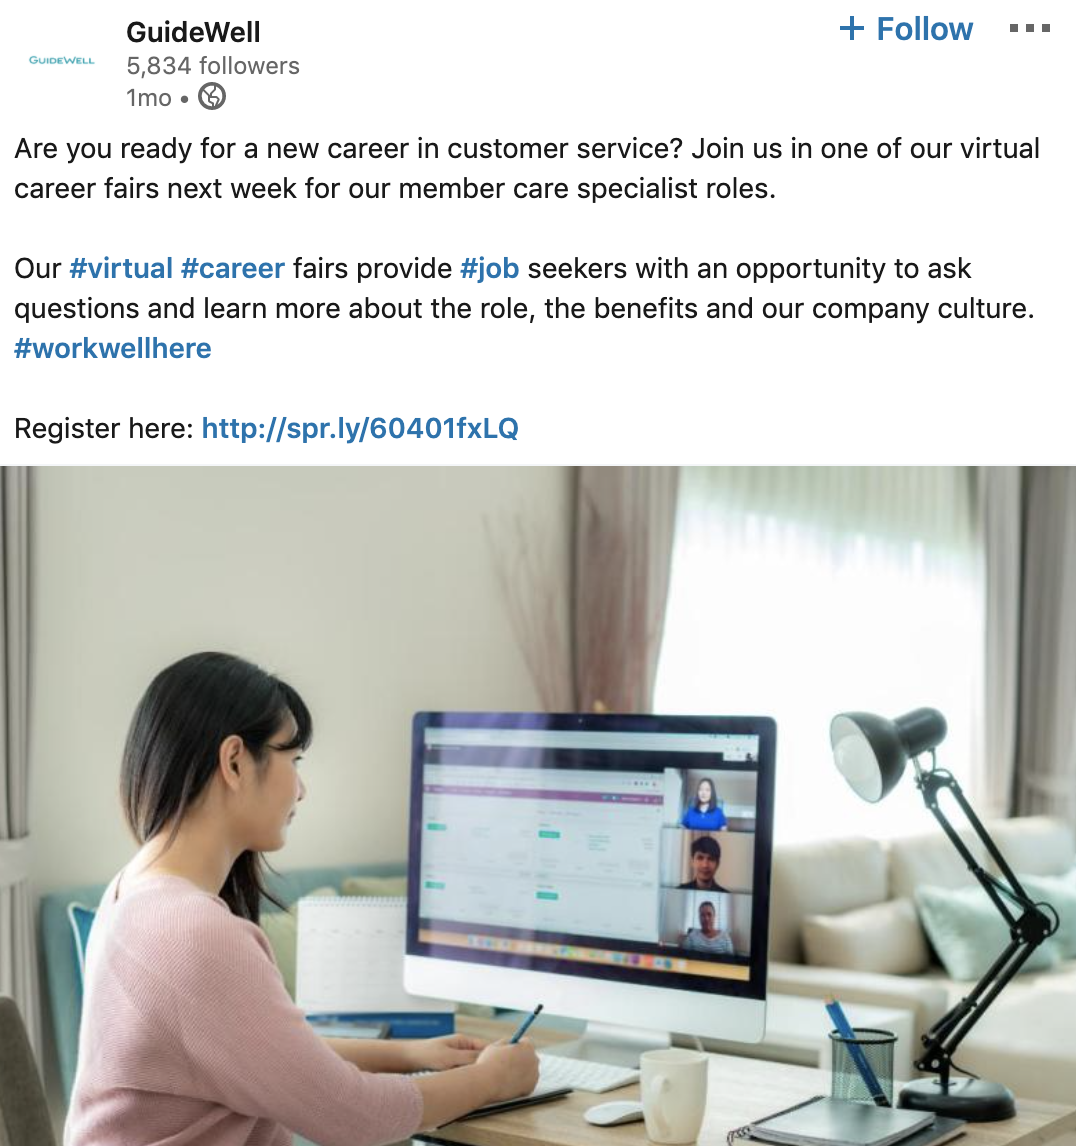 Guidewell virtual career fair LinkedIn screenshot